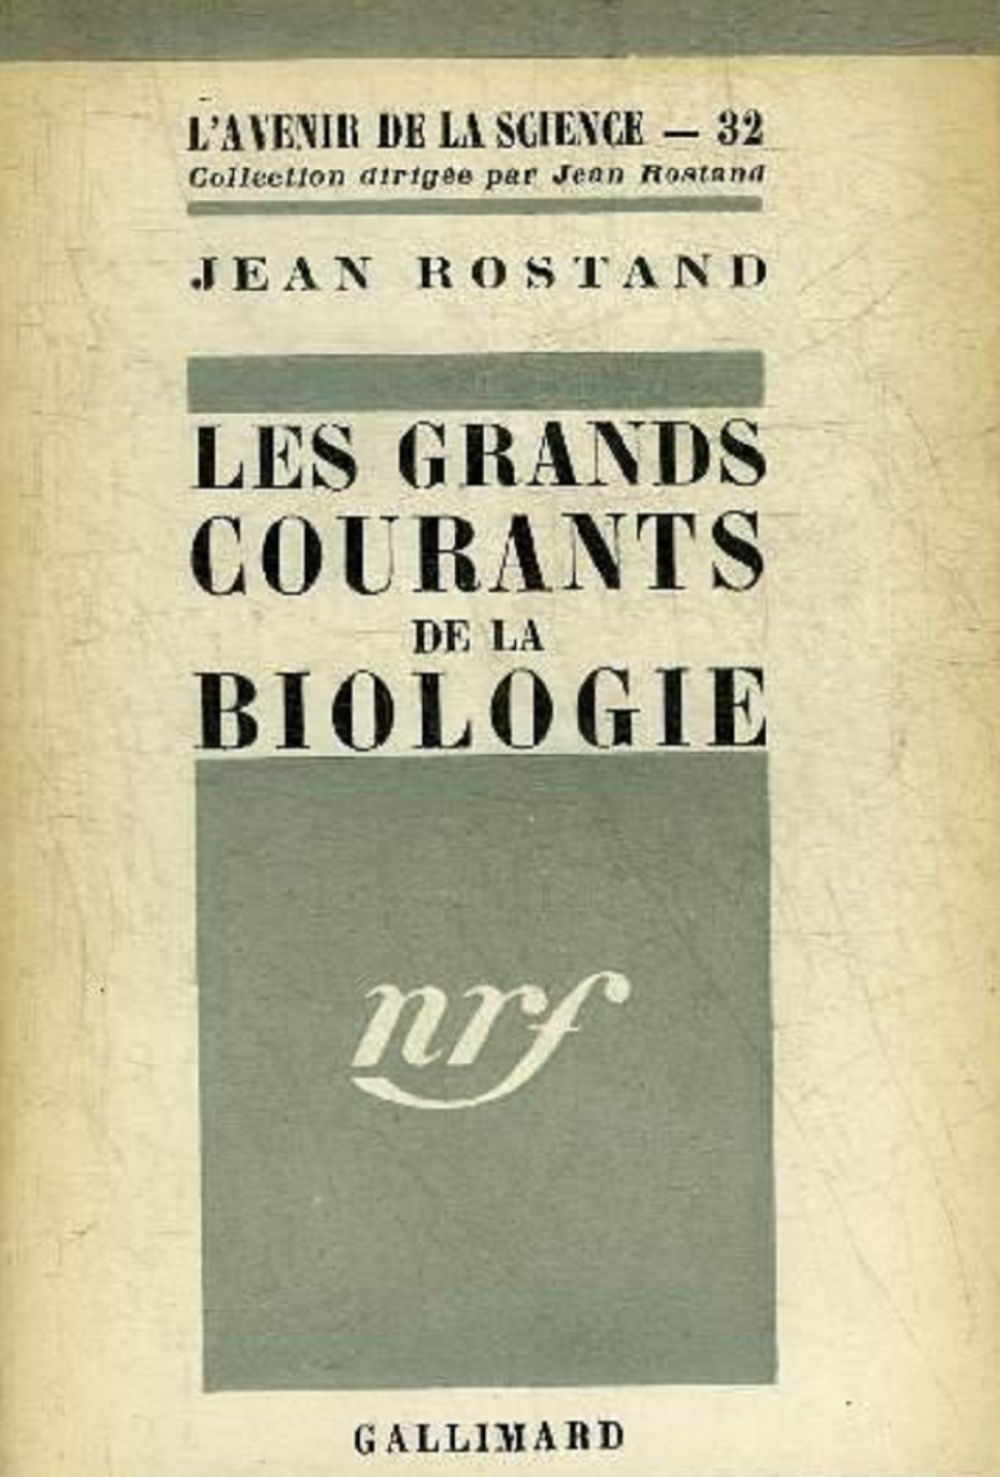 Les Grands courants de la biologie